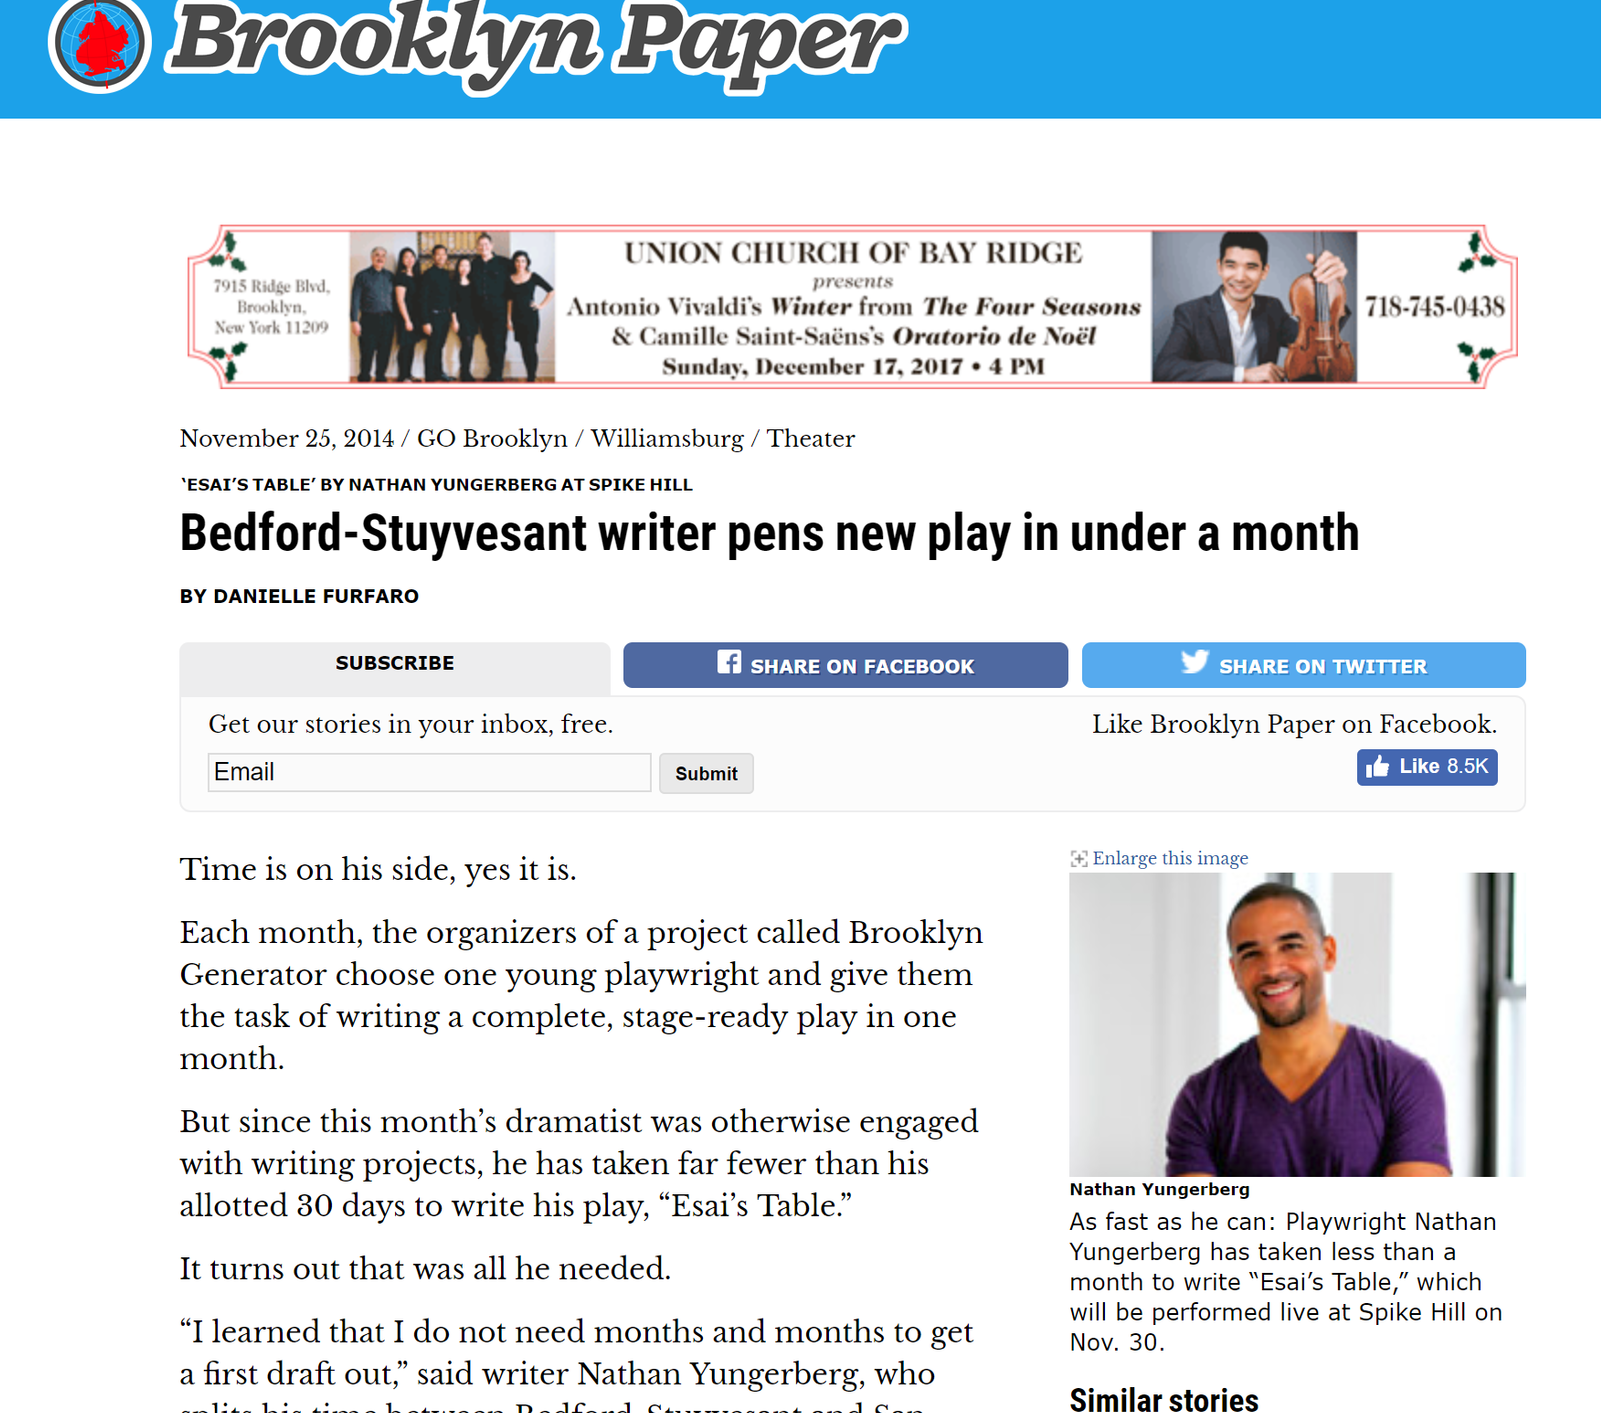 """Brooklyn Paper - Time is on his side, yes it is. Each month, the organizers of a project called Brooklyn Generator choose one young playwright and give them the task of writing a complete, stage-ready play in one month. But since this month's dramatist was otherwise engaged with writing projects, he has taken far fewer than his allotted 30 days to write his play, """"Esai's Table."""" It turns out that was all he needed. (click on image for full article)"""